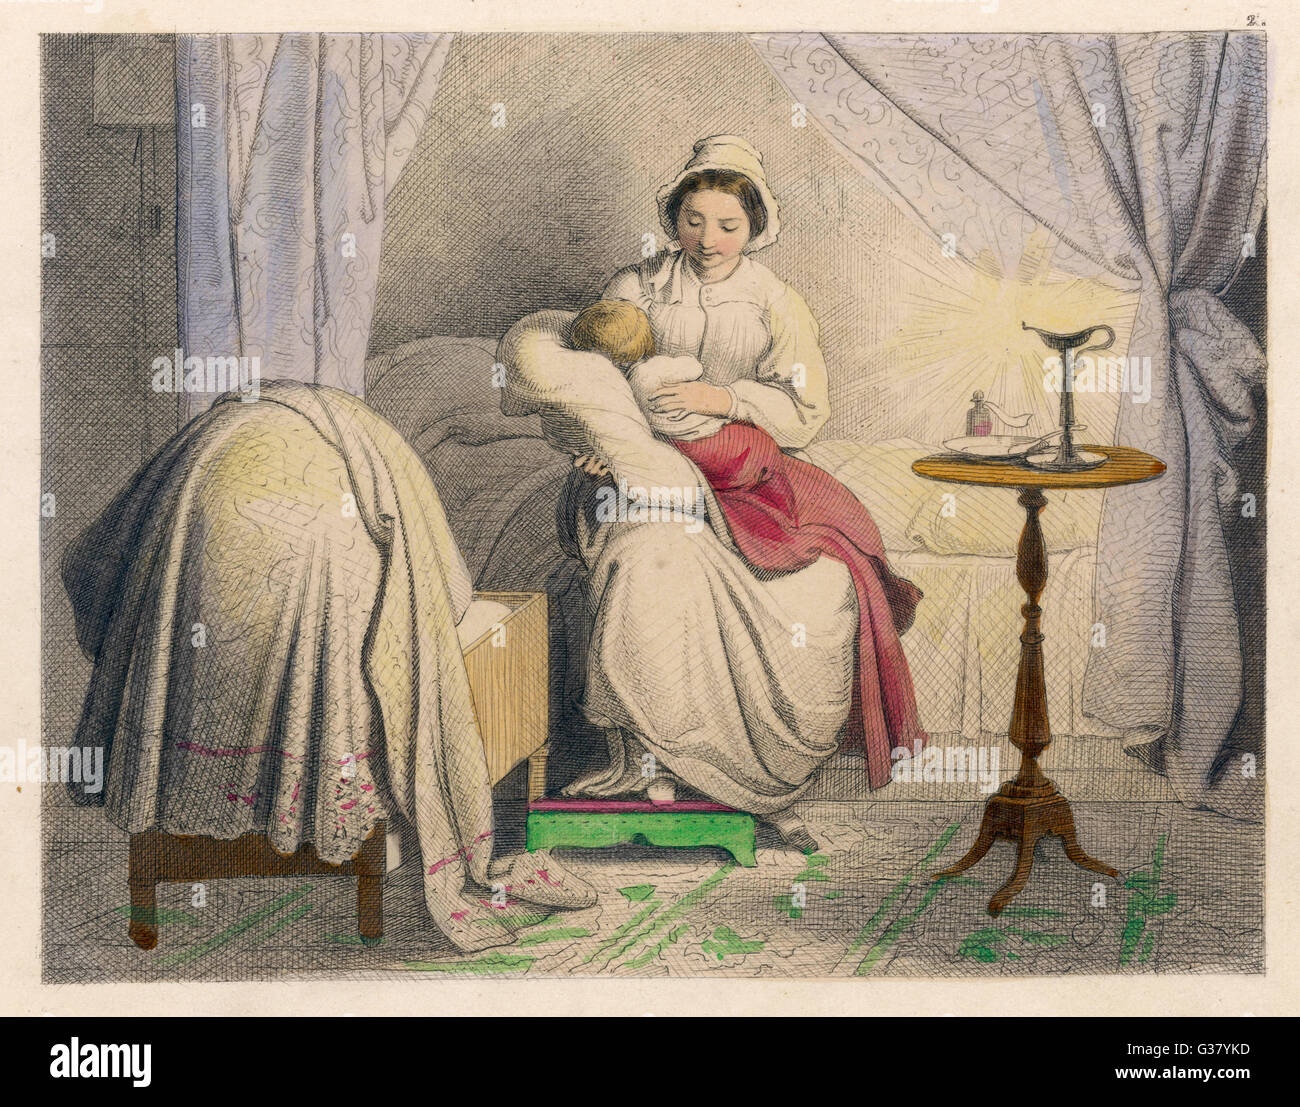 Mother sits up until her baby  goes back to sleep after it  wakes up in the night        Date: 1852 - Stock Image